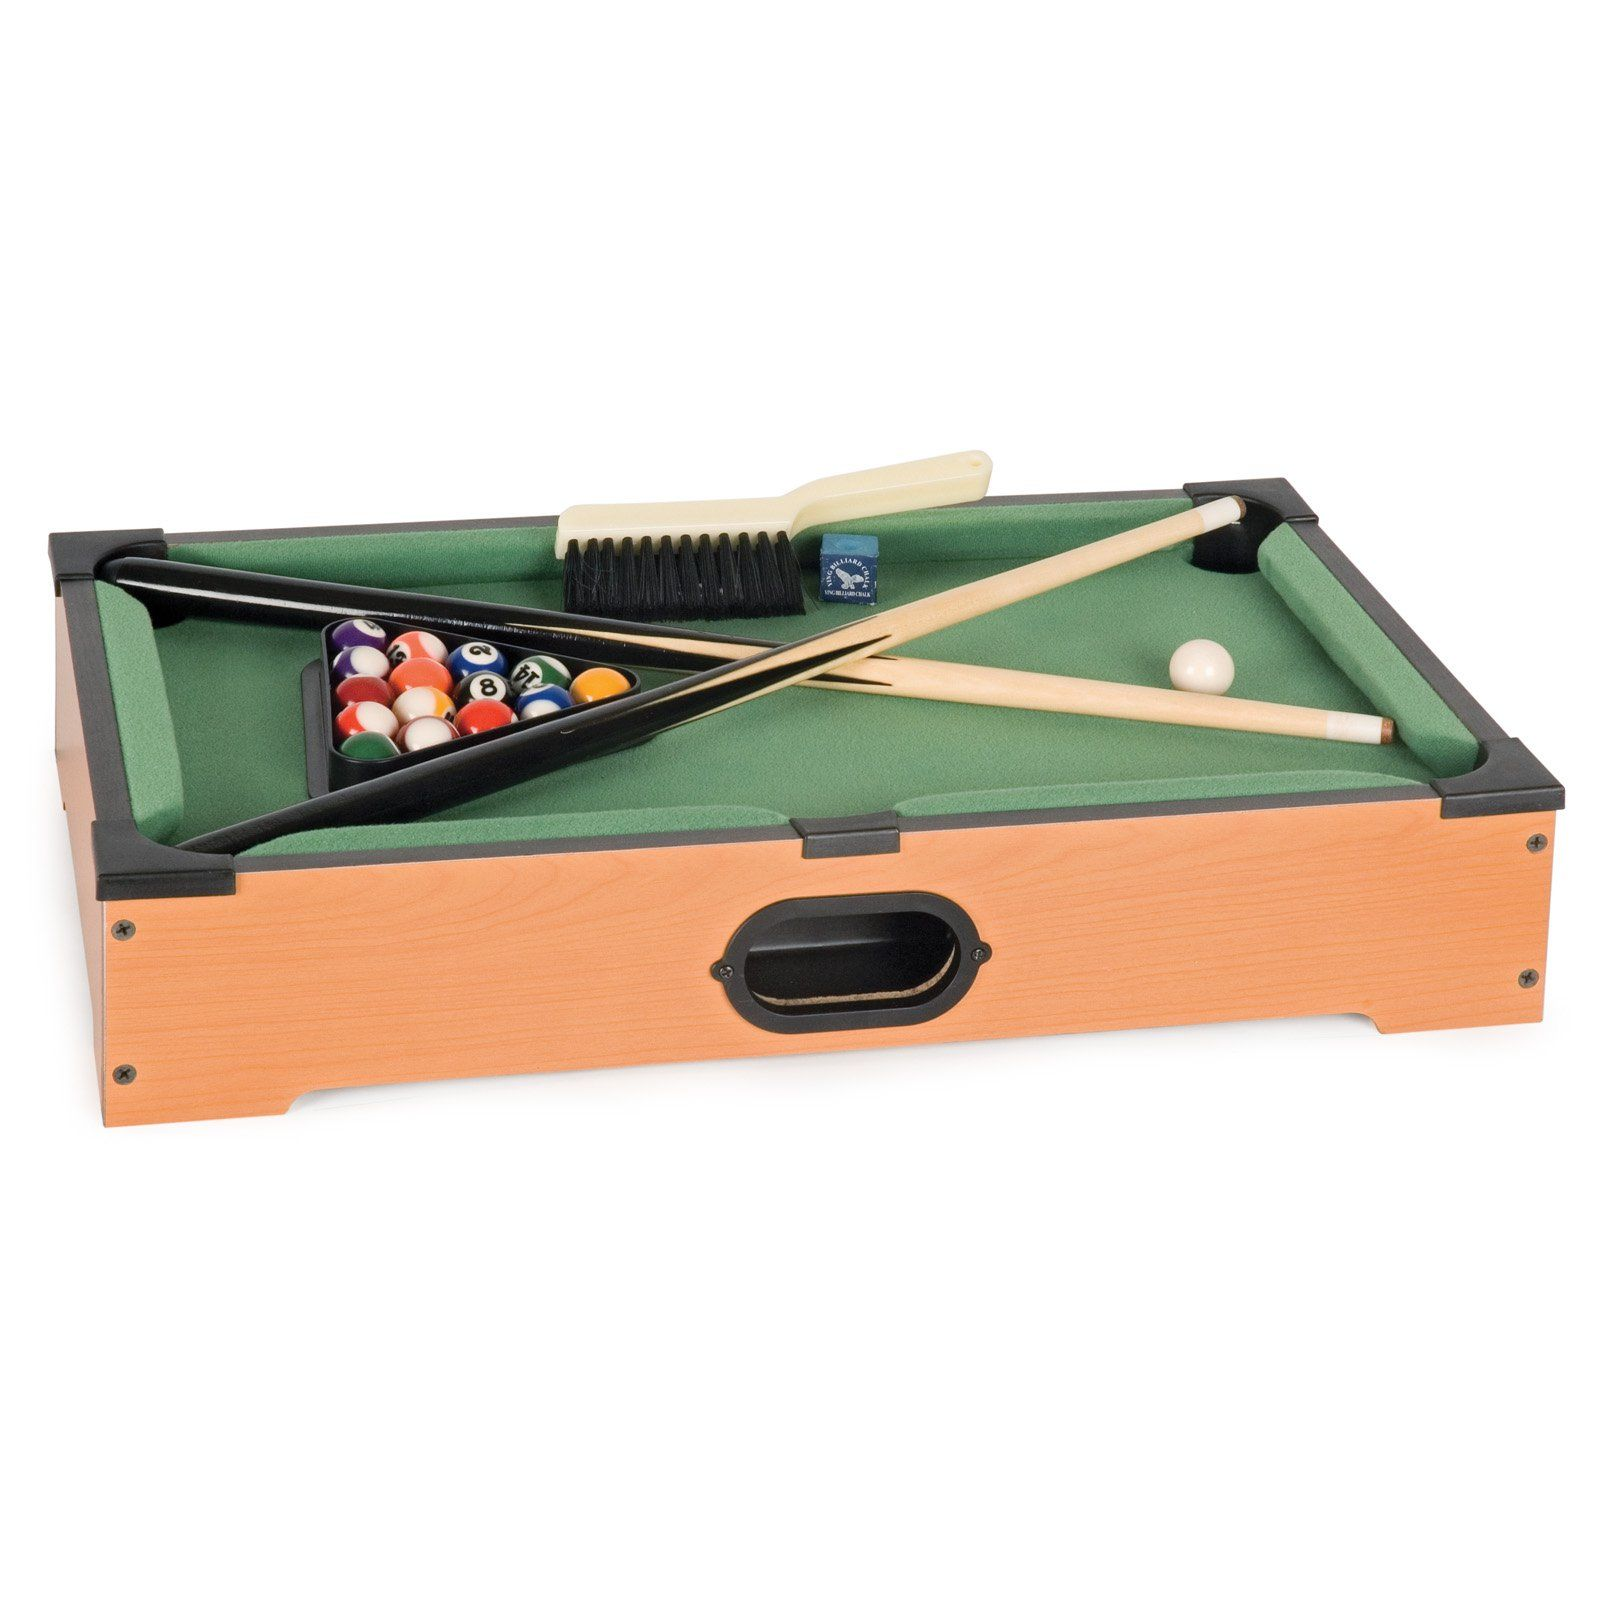 Fabulous Chh 21 In Mini Pool Table Top Game Products In 2019 Download Free Architecture Designs Scobabritishbridgeorg